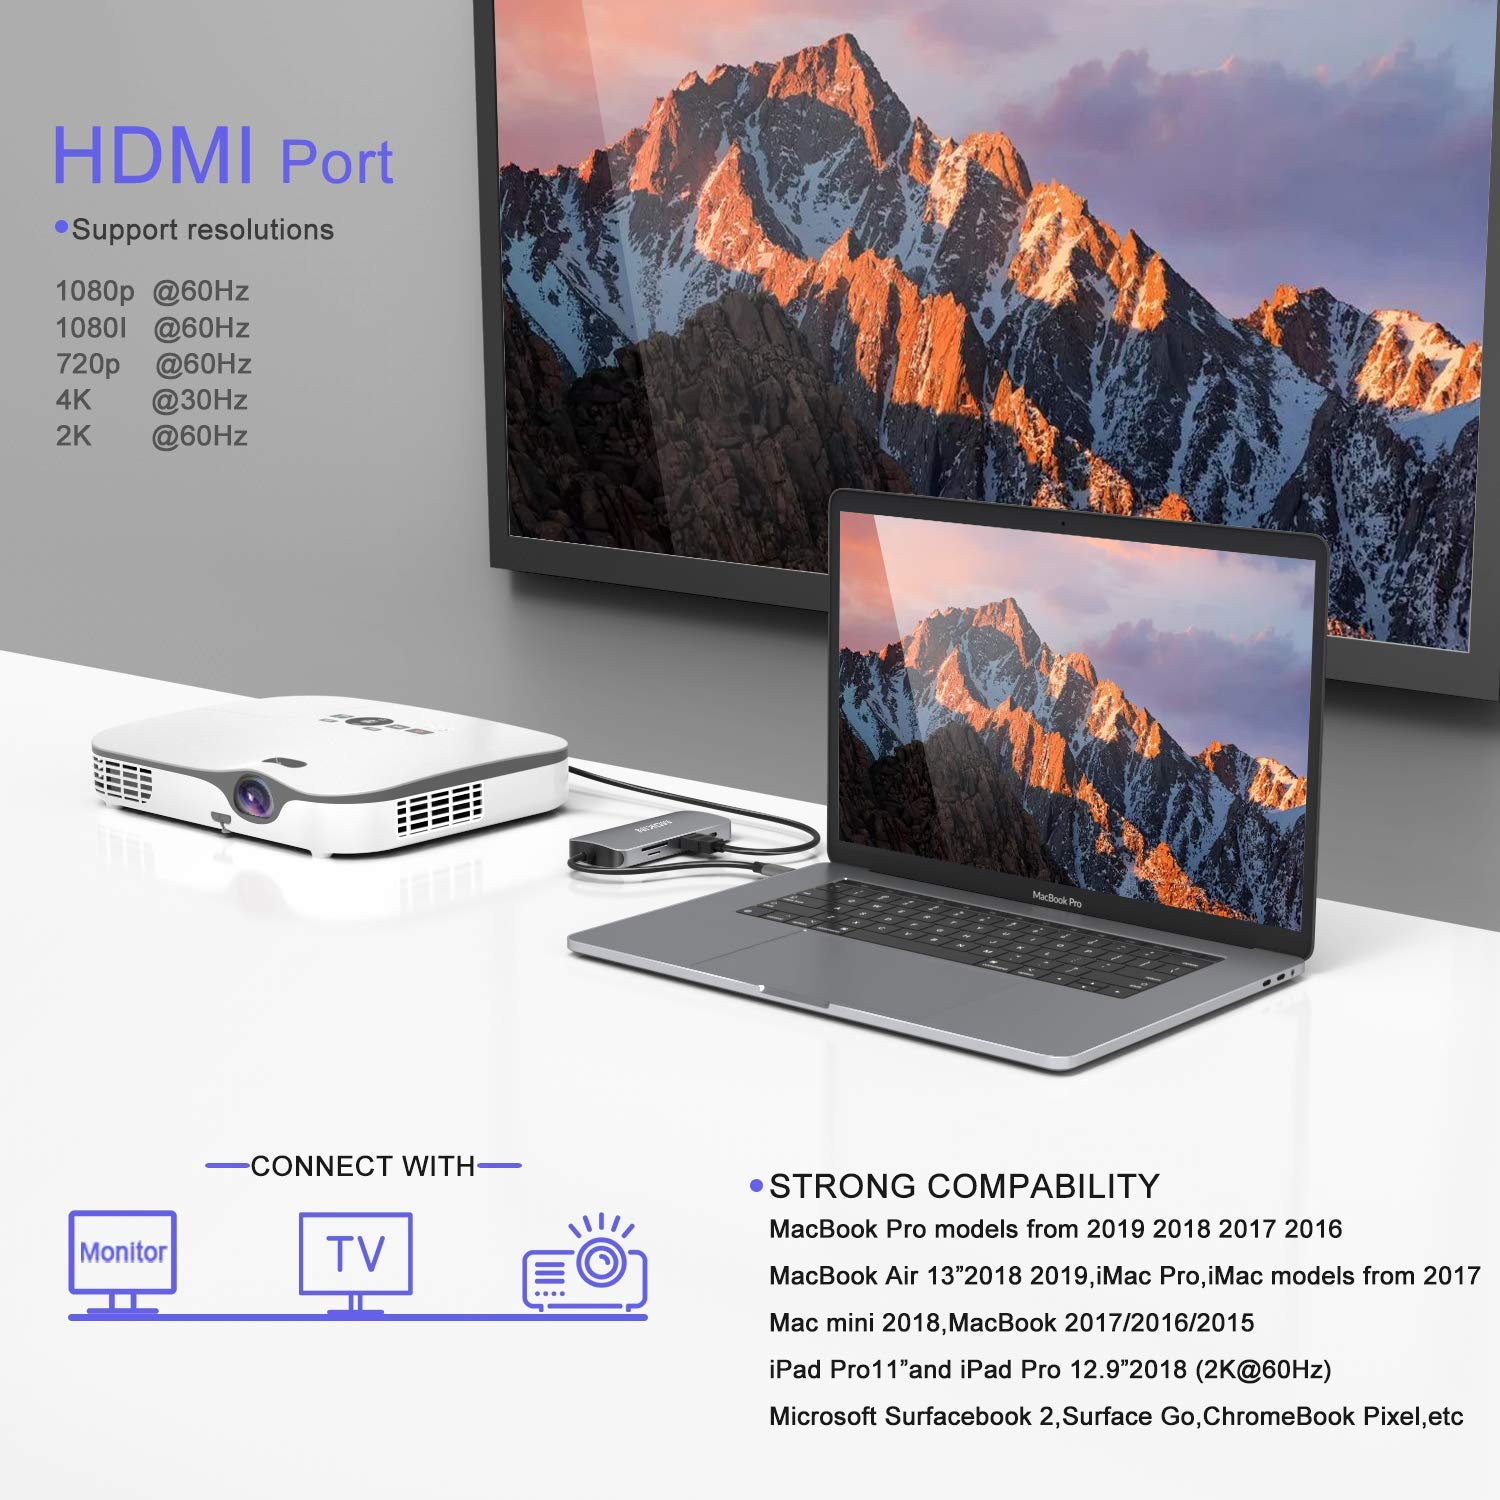 4K HDMI Port for Laptops